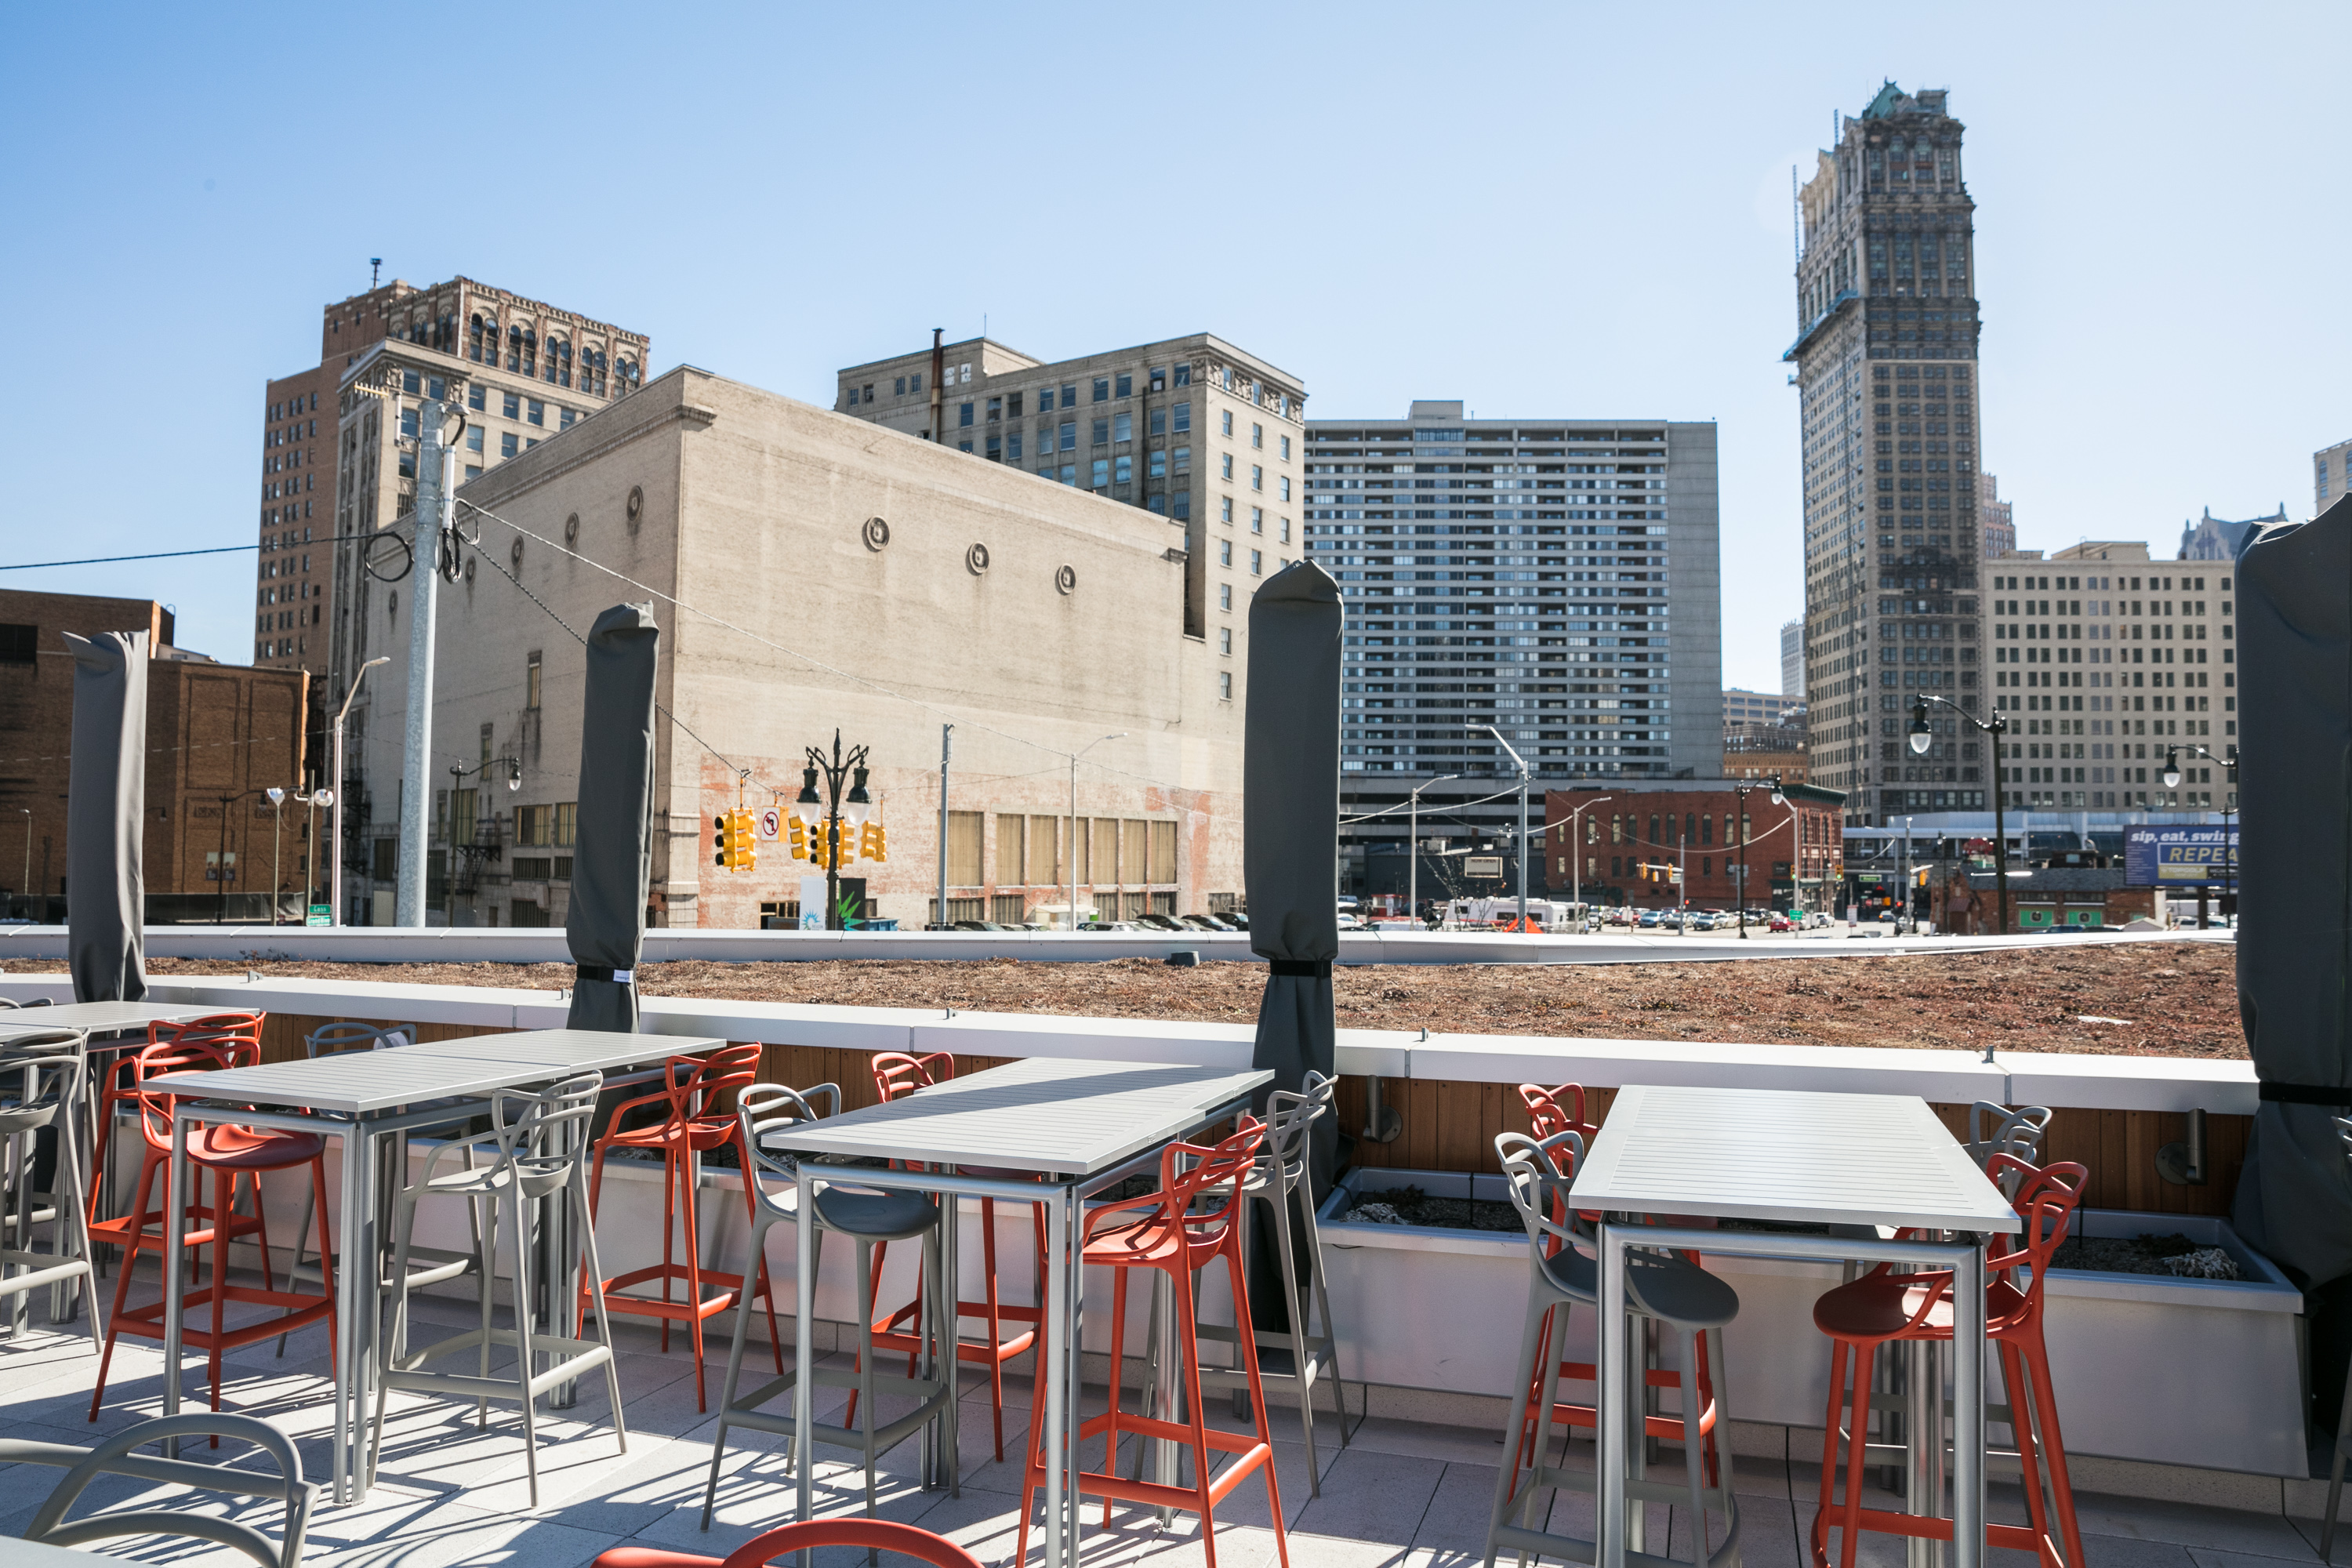 Rooftop building with tables and chairs shows views of downtown Detroit buildings